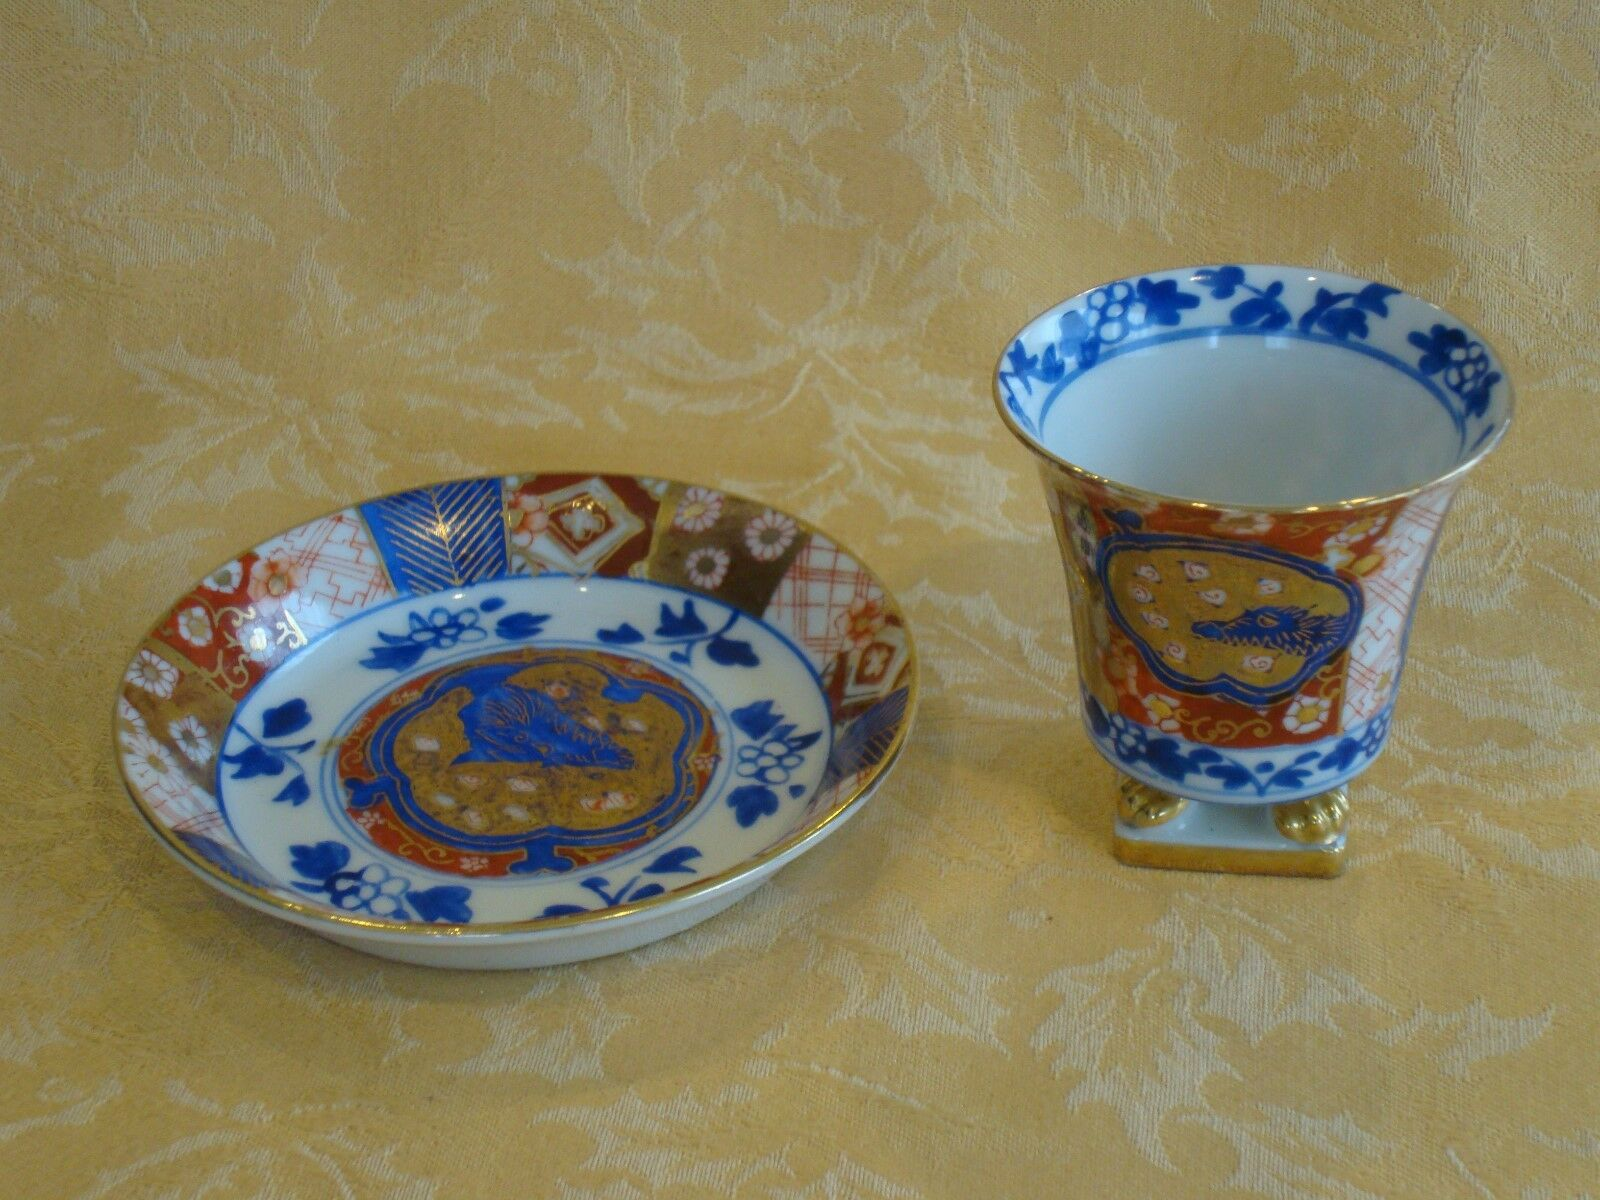 Vintage Imari Porcelain Footed Cup and Saucer Set Hand Painted